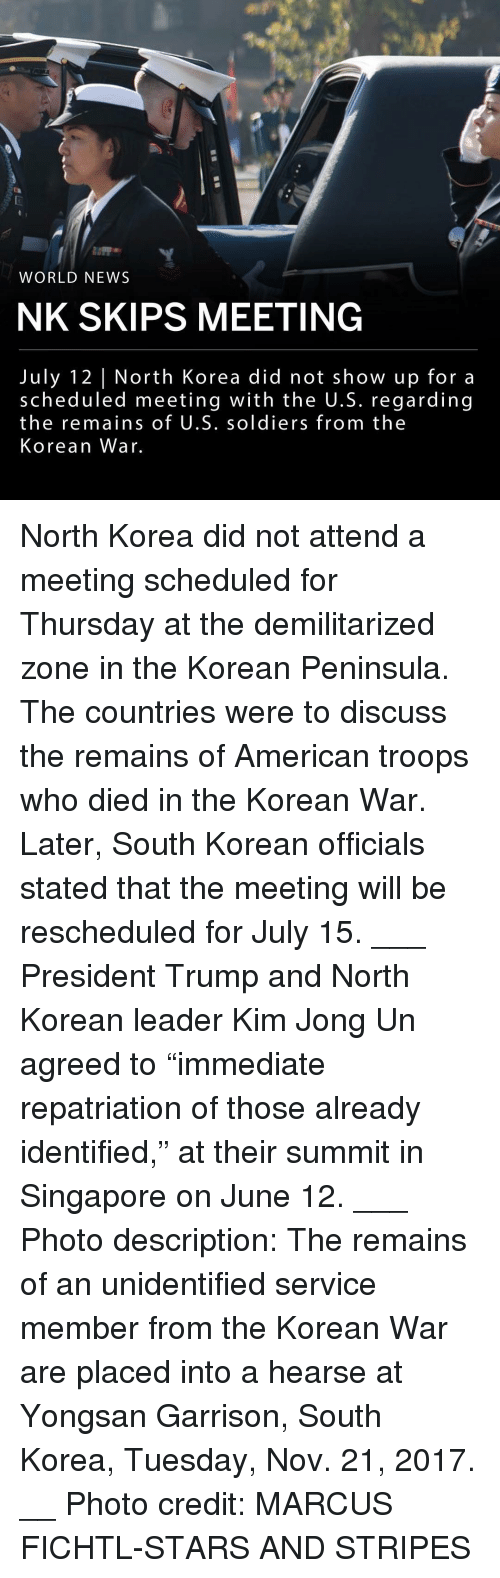 "Kim Jong-Un, Memes, and News: WORLD NEWS  NK SKIPS MEETING  July 12 North Korea did not show up for a  scheduled meeting with the U.S. regarding  the remains of U.S. soldiers from the  Korean War. North Korea did not attend a meeting scheduled for Thursday at the demilitarized zone in the Korean Peninsula. The countries were to discuss the remains of American troops who died in the Korean War. Later, South Korean officials stated that the meeting will be rescheduled for July 15. ___ President Trump and North Korean leader Kim Jong Un agreed to ""immediate repatriation of those already identified,"" at their summit in Singapore on June 12. ___ Photo description: The remains of an unidentified service member from the Korean War are placed into a hearse at Yongsan Garrison, South Korea, Tuesday, Nov. 21, 2017. __ Photo credit: MARCUS FICHTL-STARS AND STRIPES"